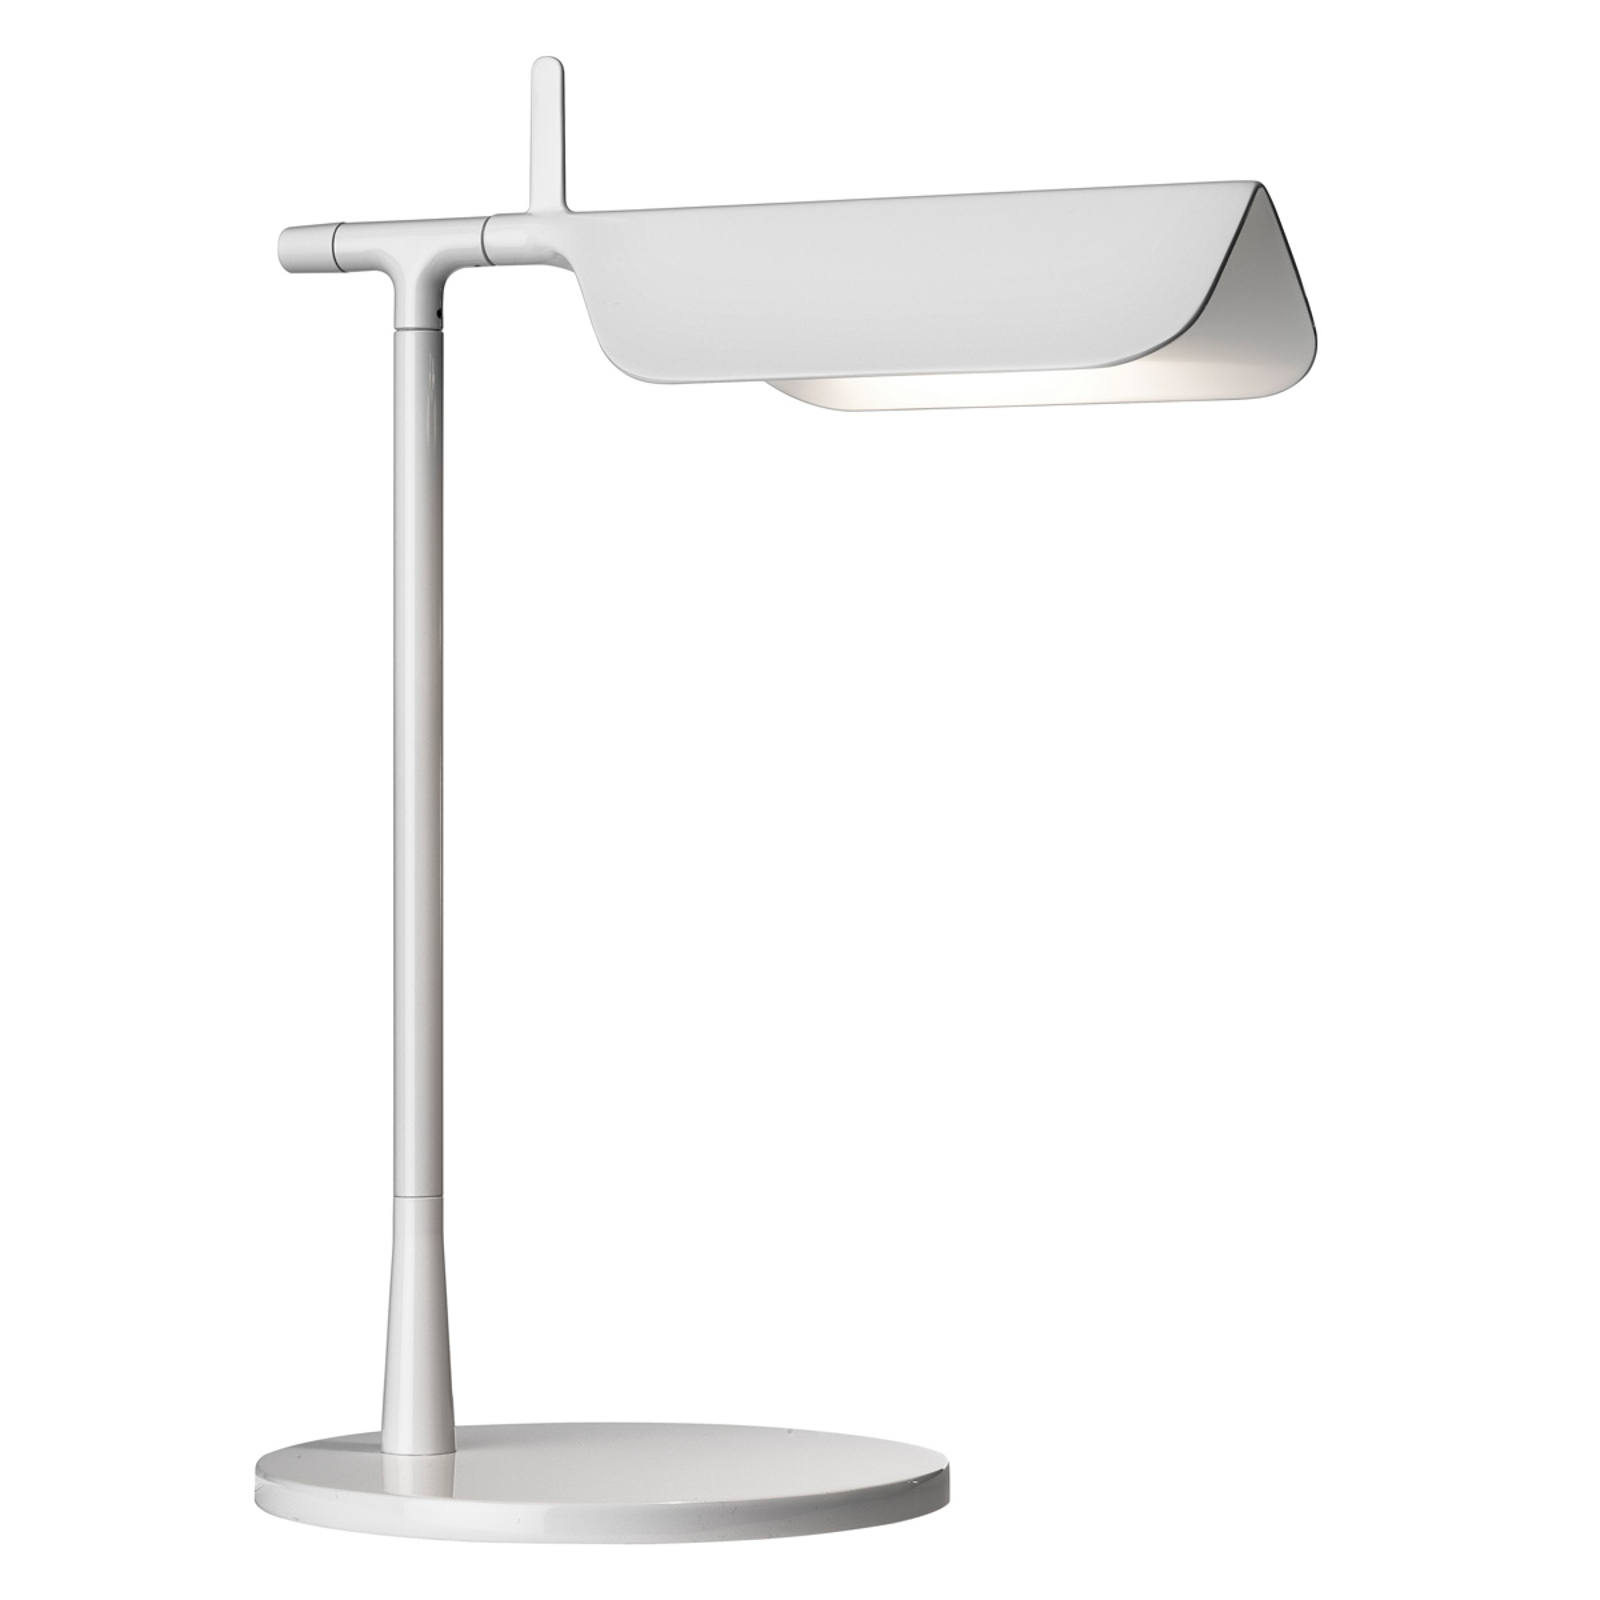 Lampe à poser innovante LED TAB T blanche